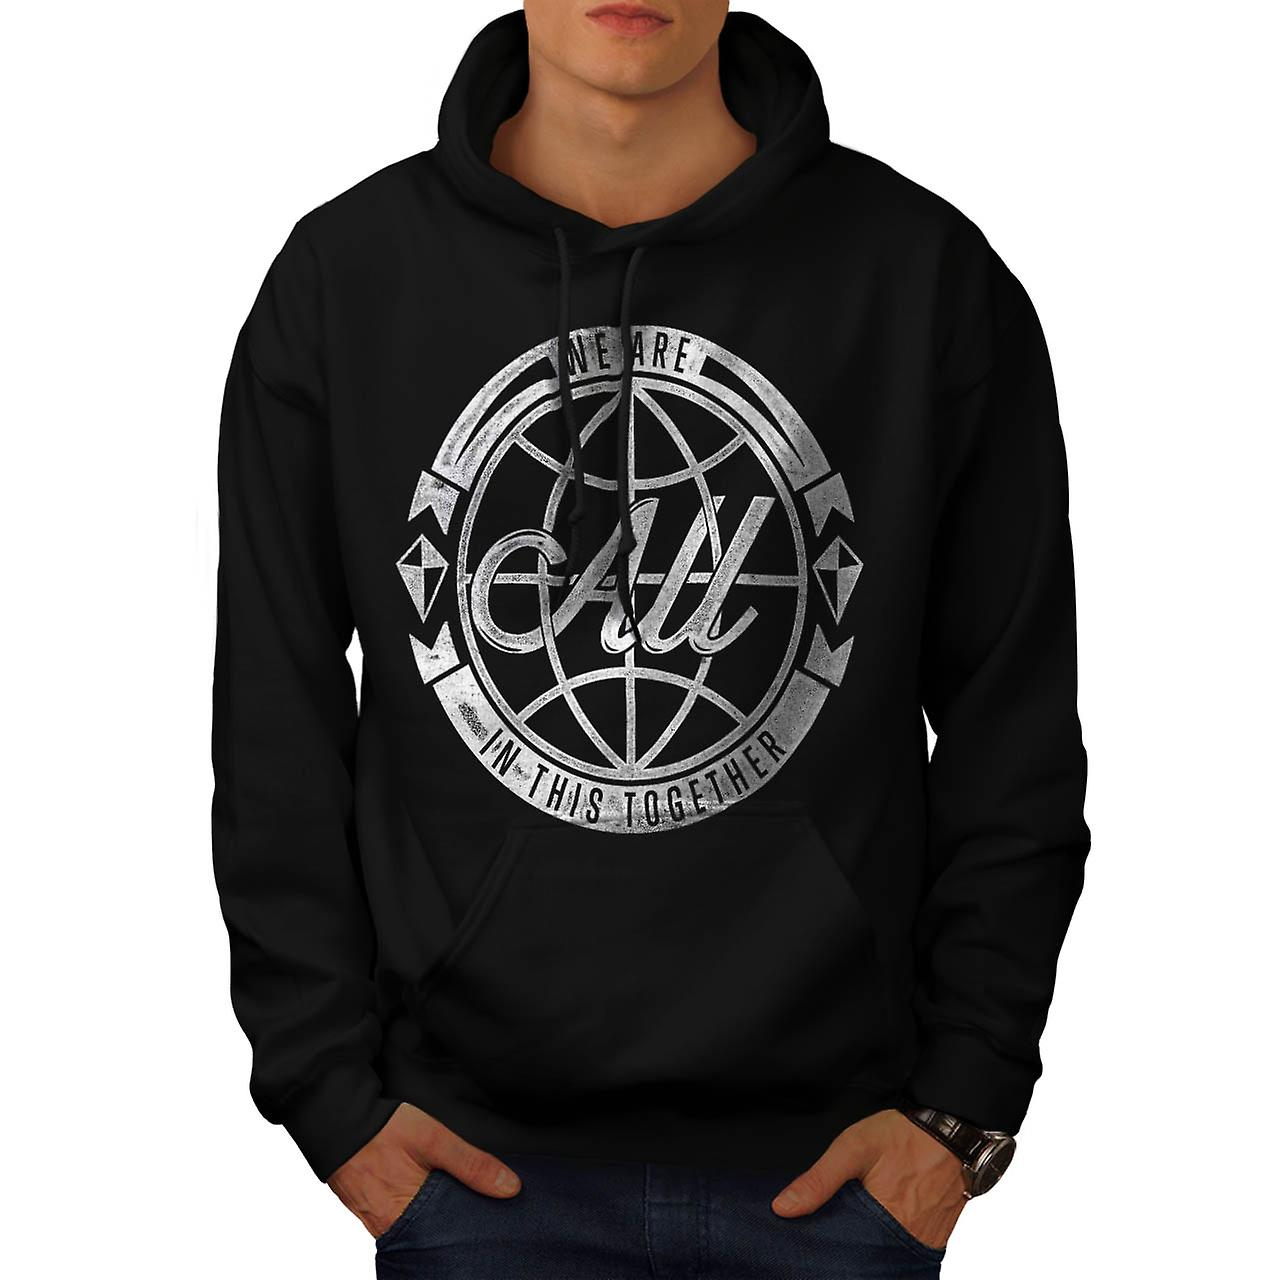 All In Together Team Work Group Men Black Hoodie | Wellcoda